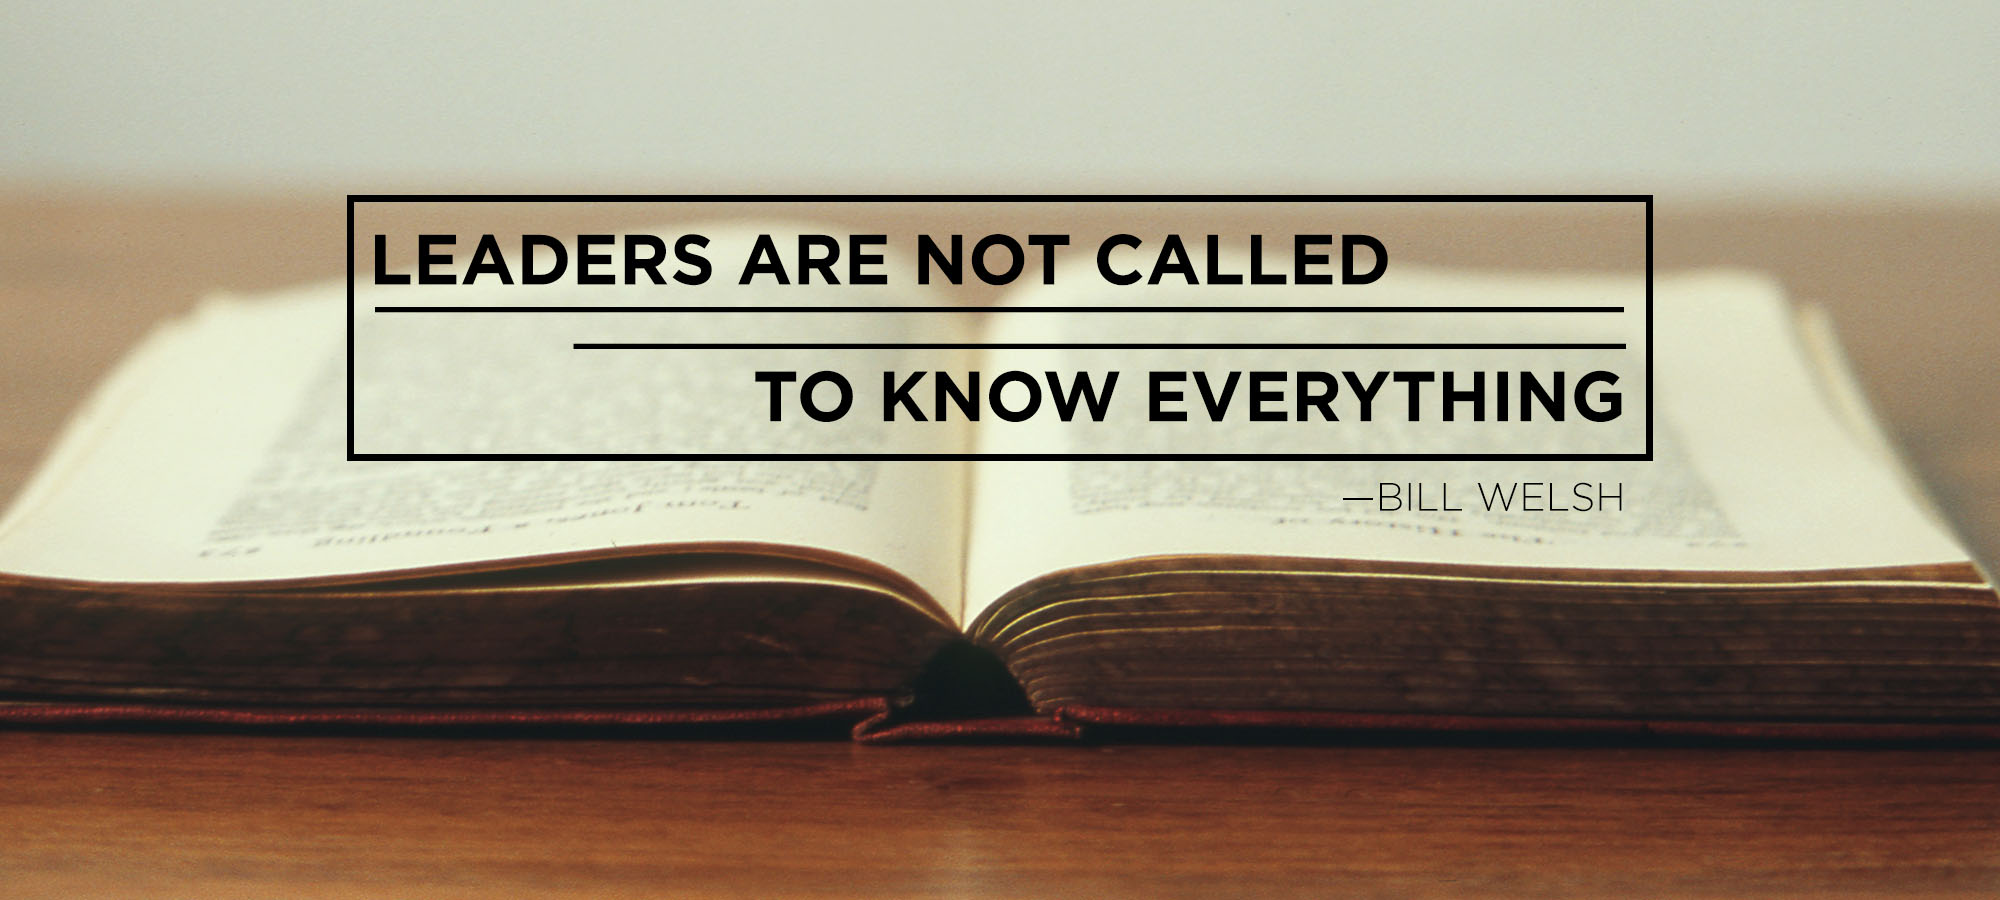 Leaders Are Not Called to Know Everything